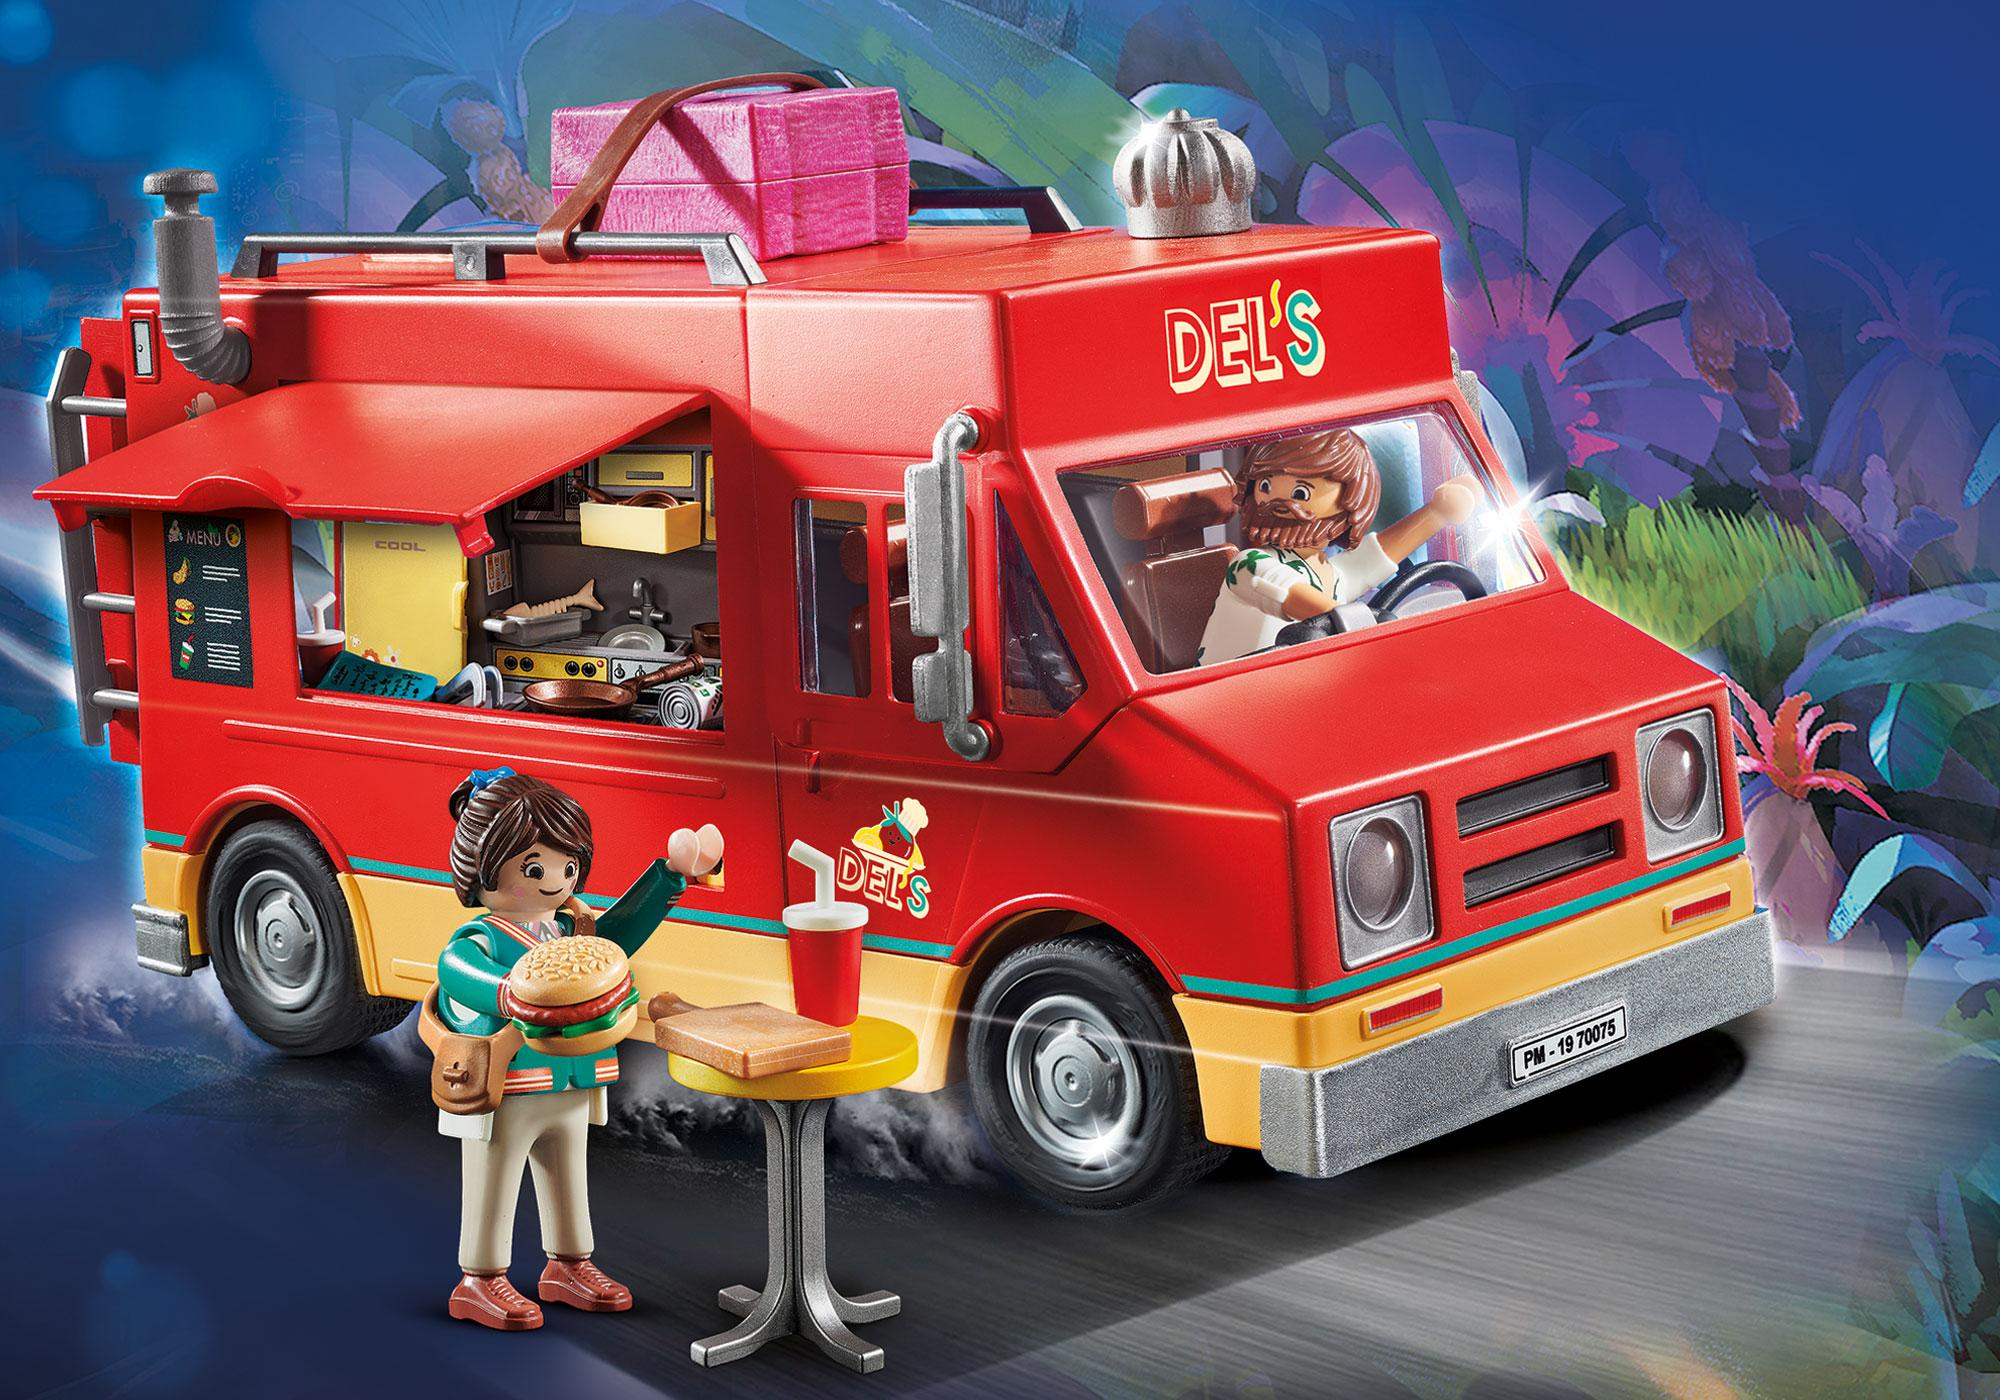 70075_product_detail/PLAYMOBIL:THE MOVIE Del's Food Truck